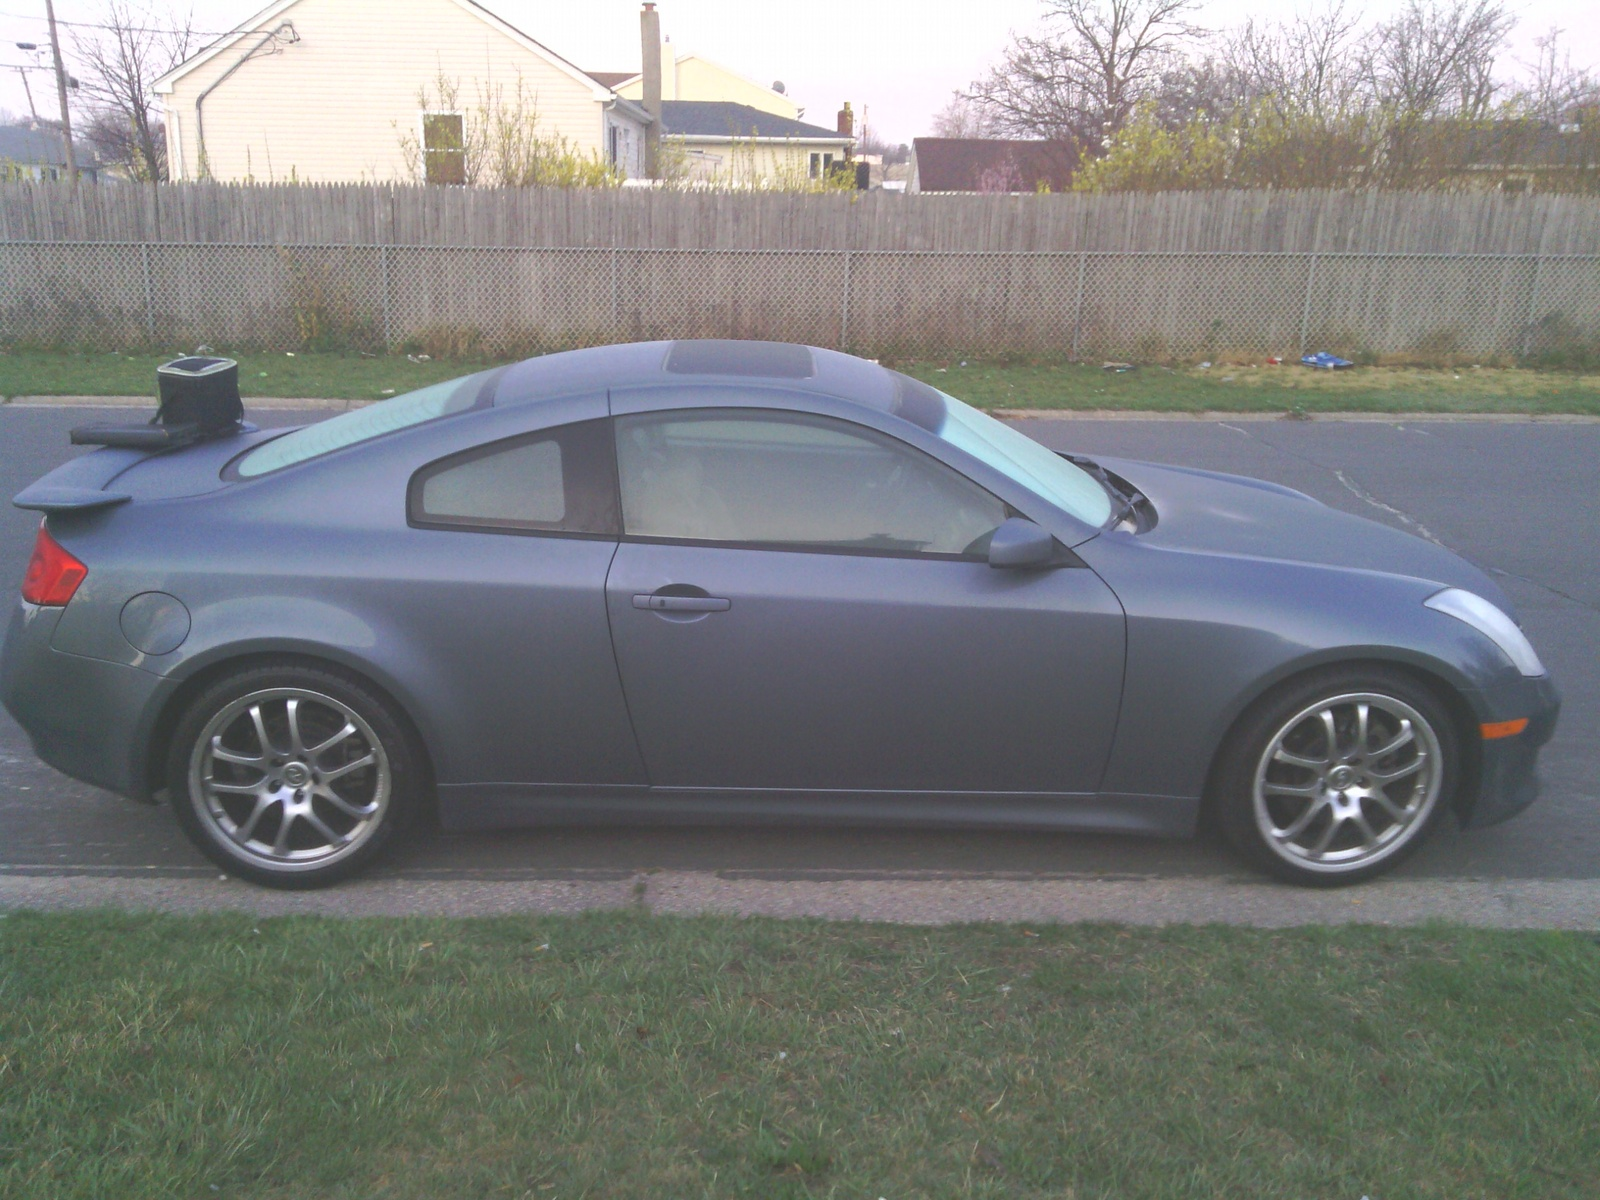 Picture of 2006 infiniti g35 coupe exterior